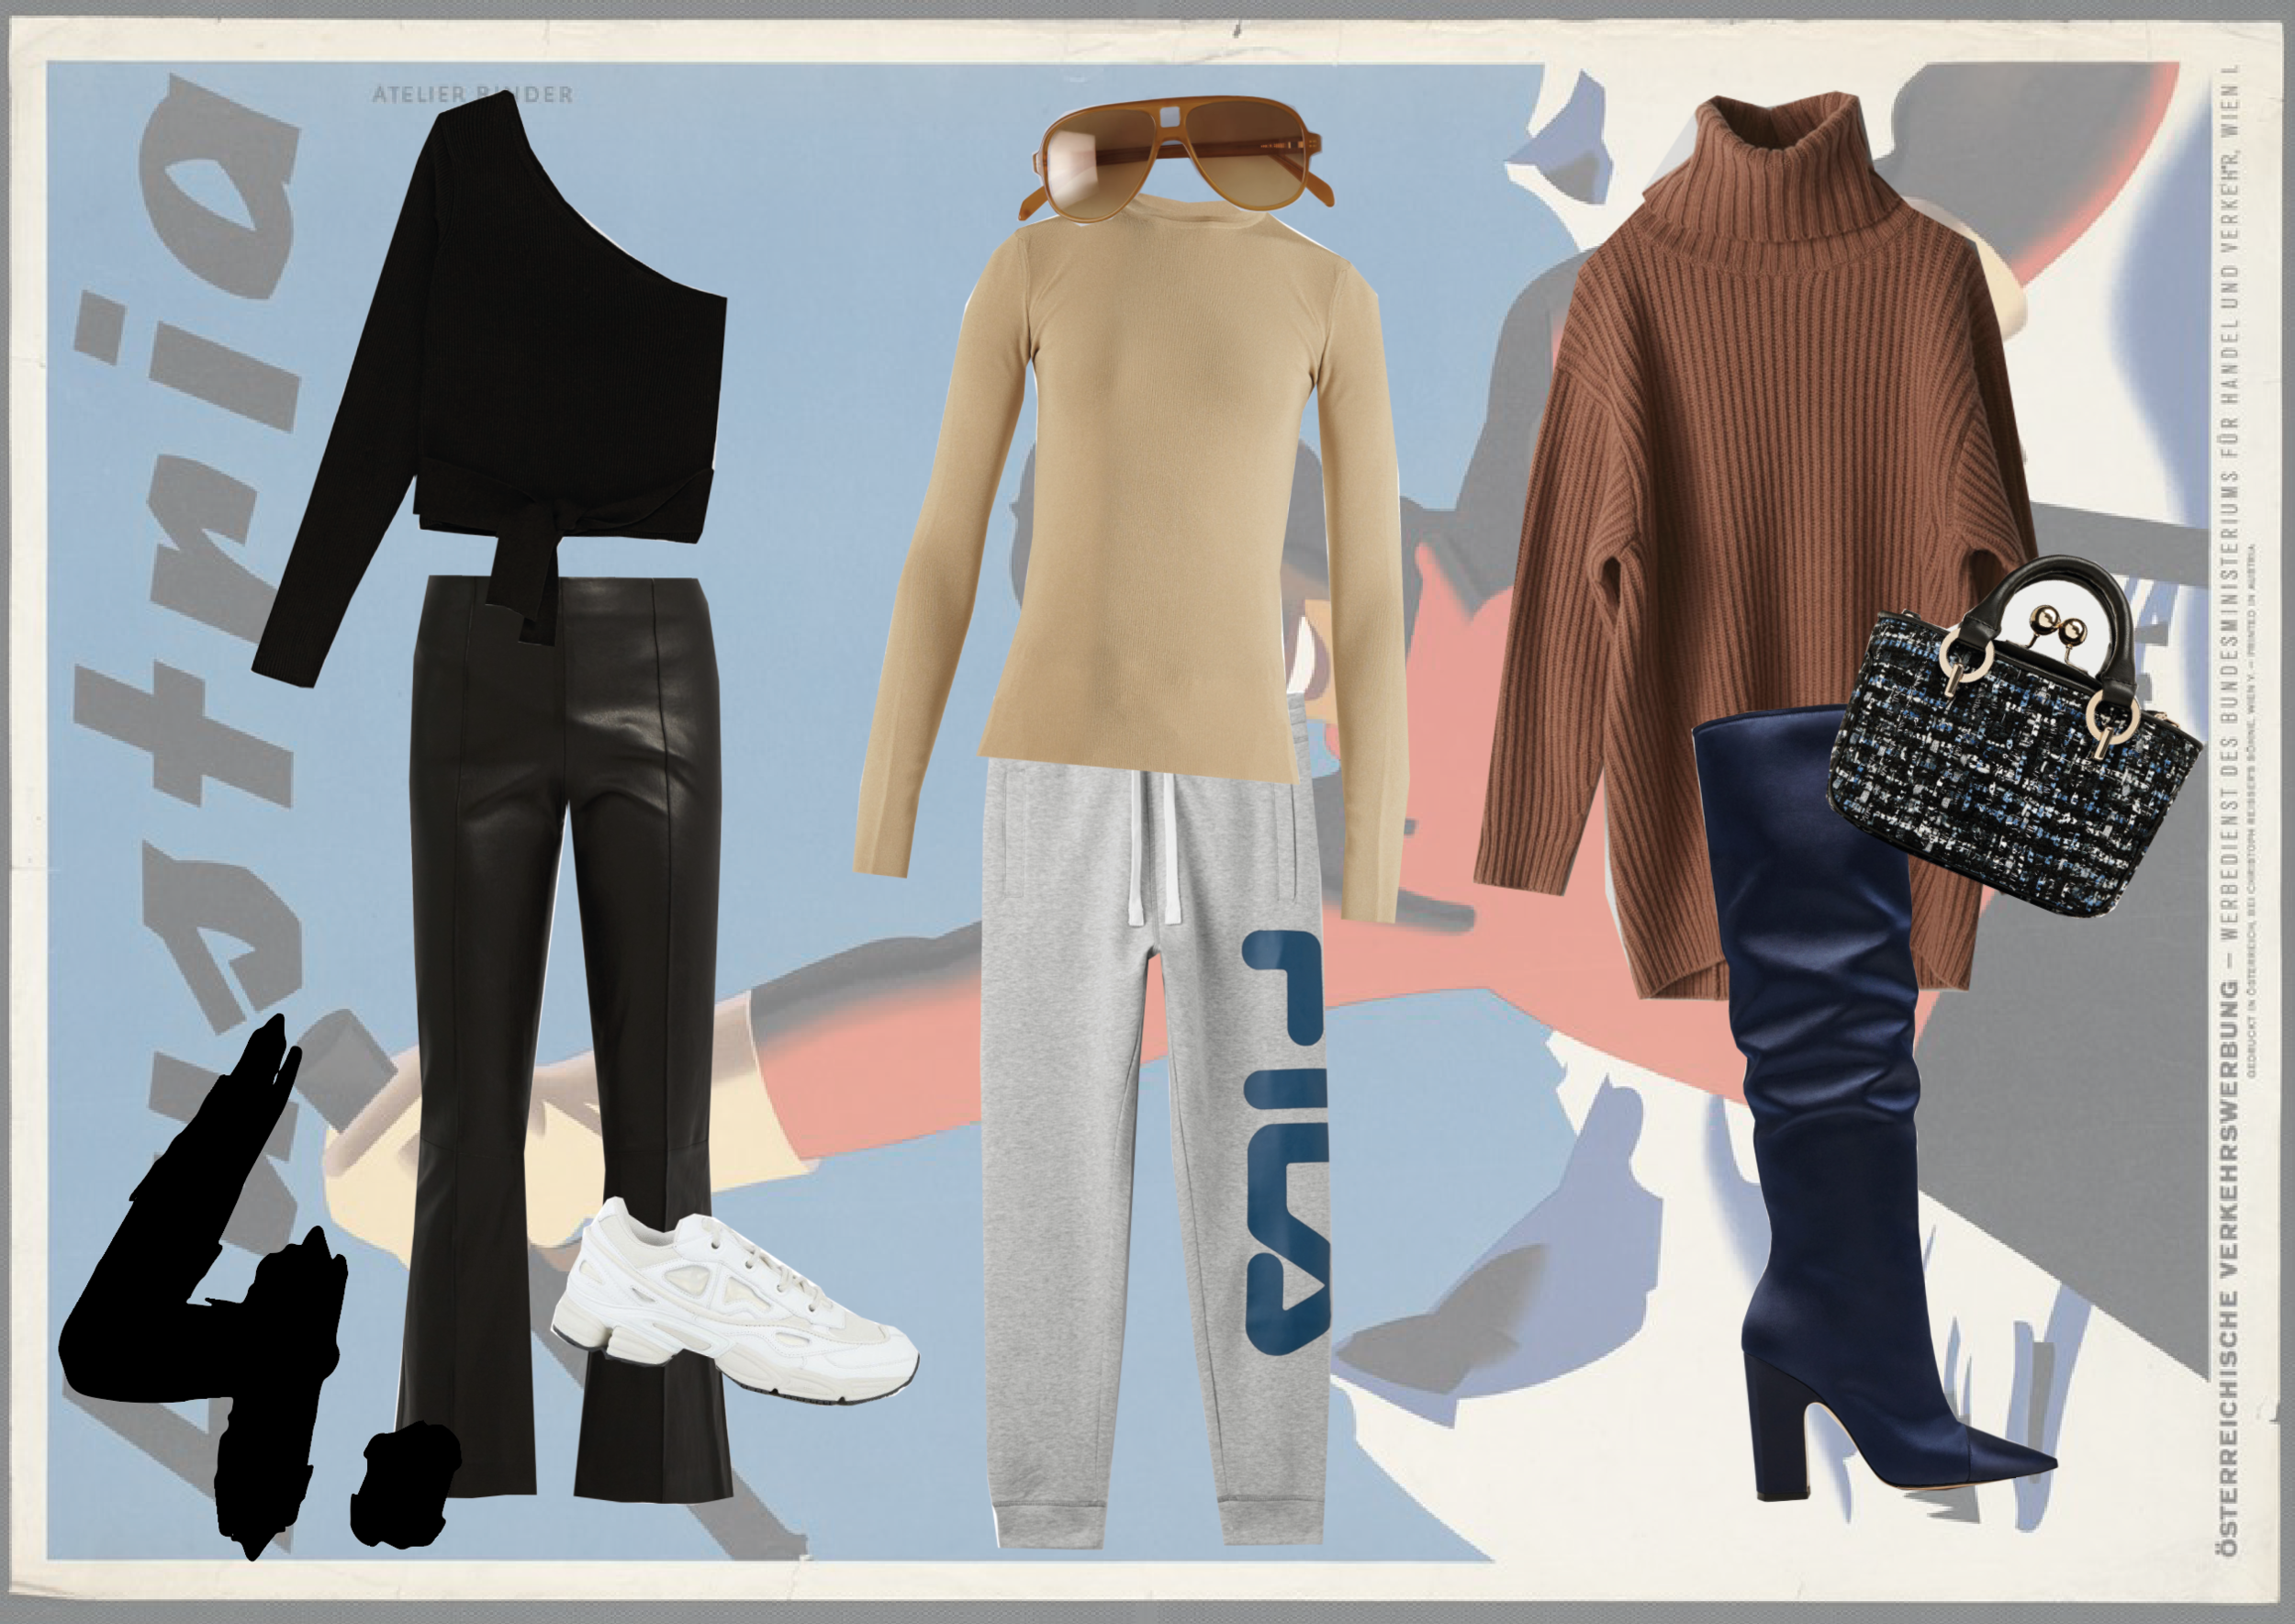 By sticking to a colour palette of blues, camels, blacks and whites, you can create multiple looks with only 8-10 pieces.